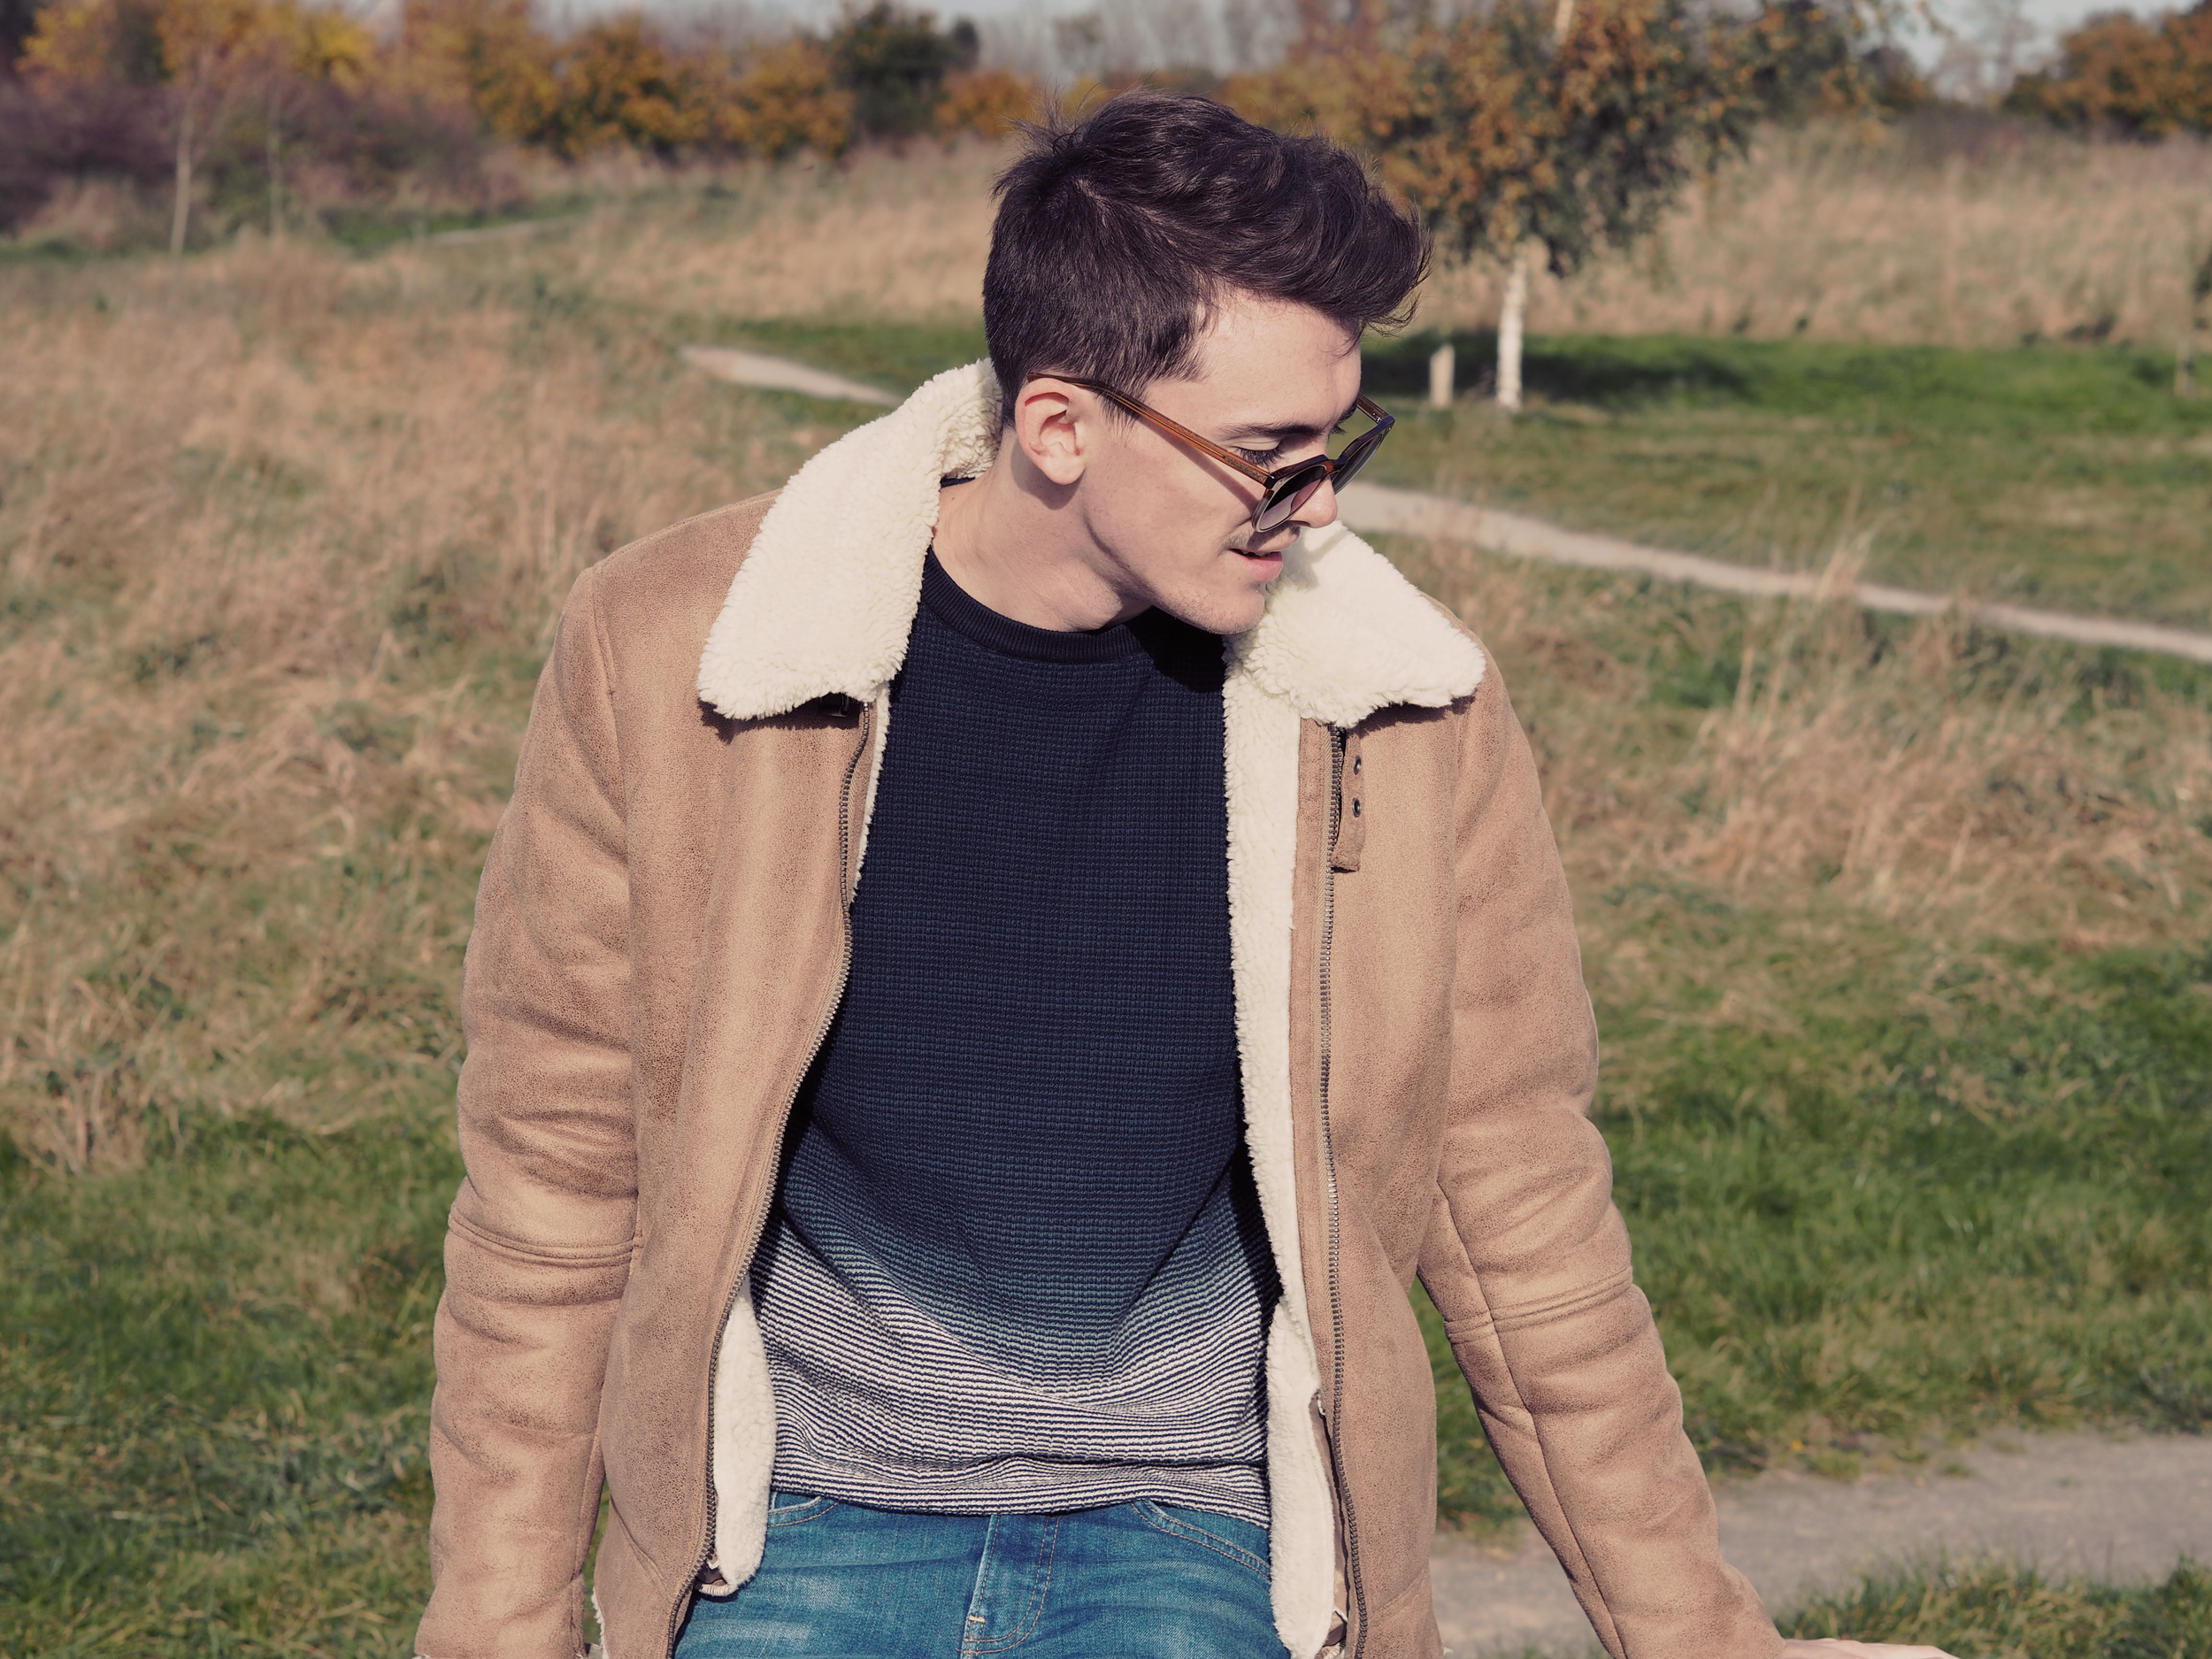 ASOS Shearling jacket | Sam Squire UK Male fashion blogger